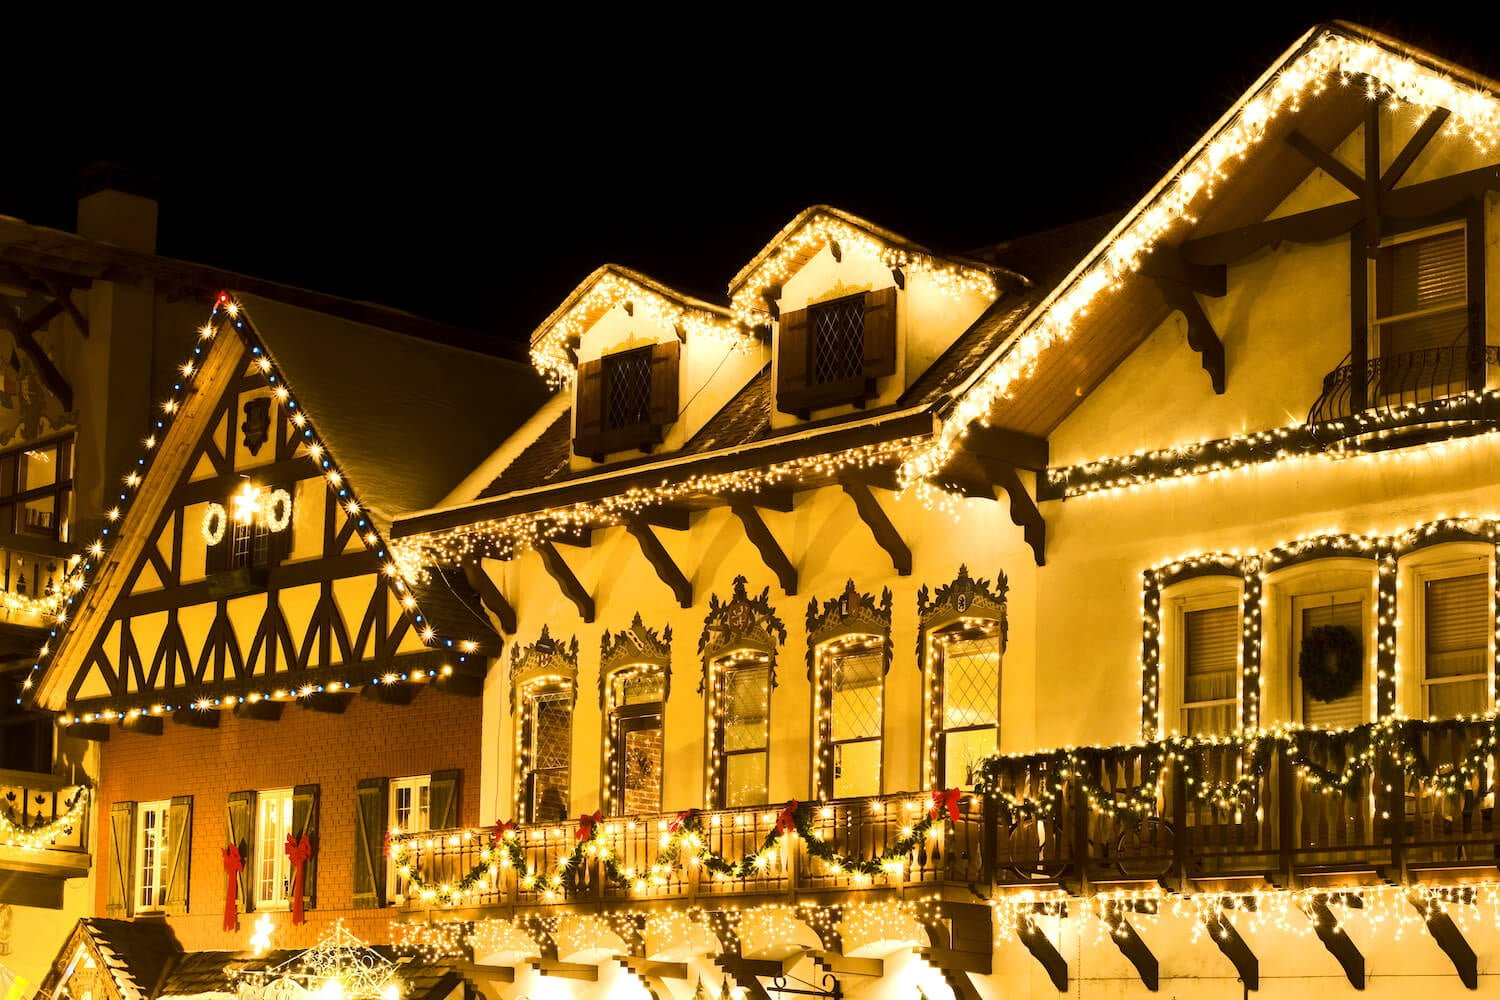 Christmas In Bethlehem Pa 2021 Some Of The Best Ways To Celebrate Christmas In Bethlehem Pa The Sayre Mansion